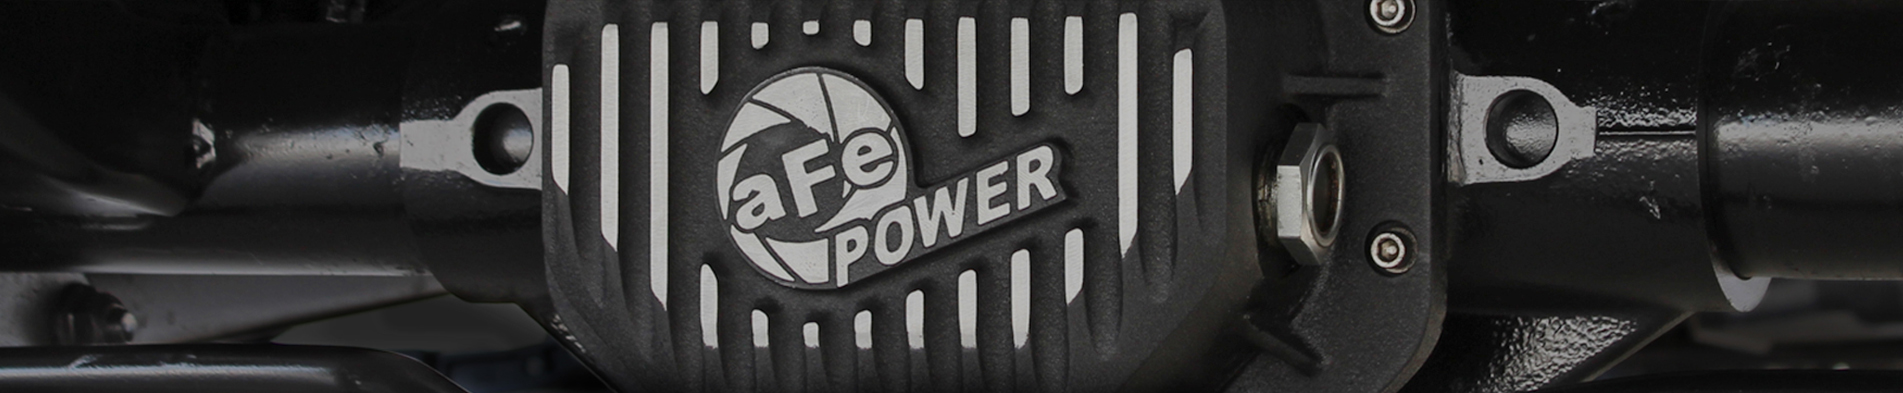 afe-power-banner.jpg